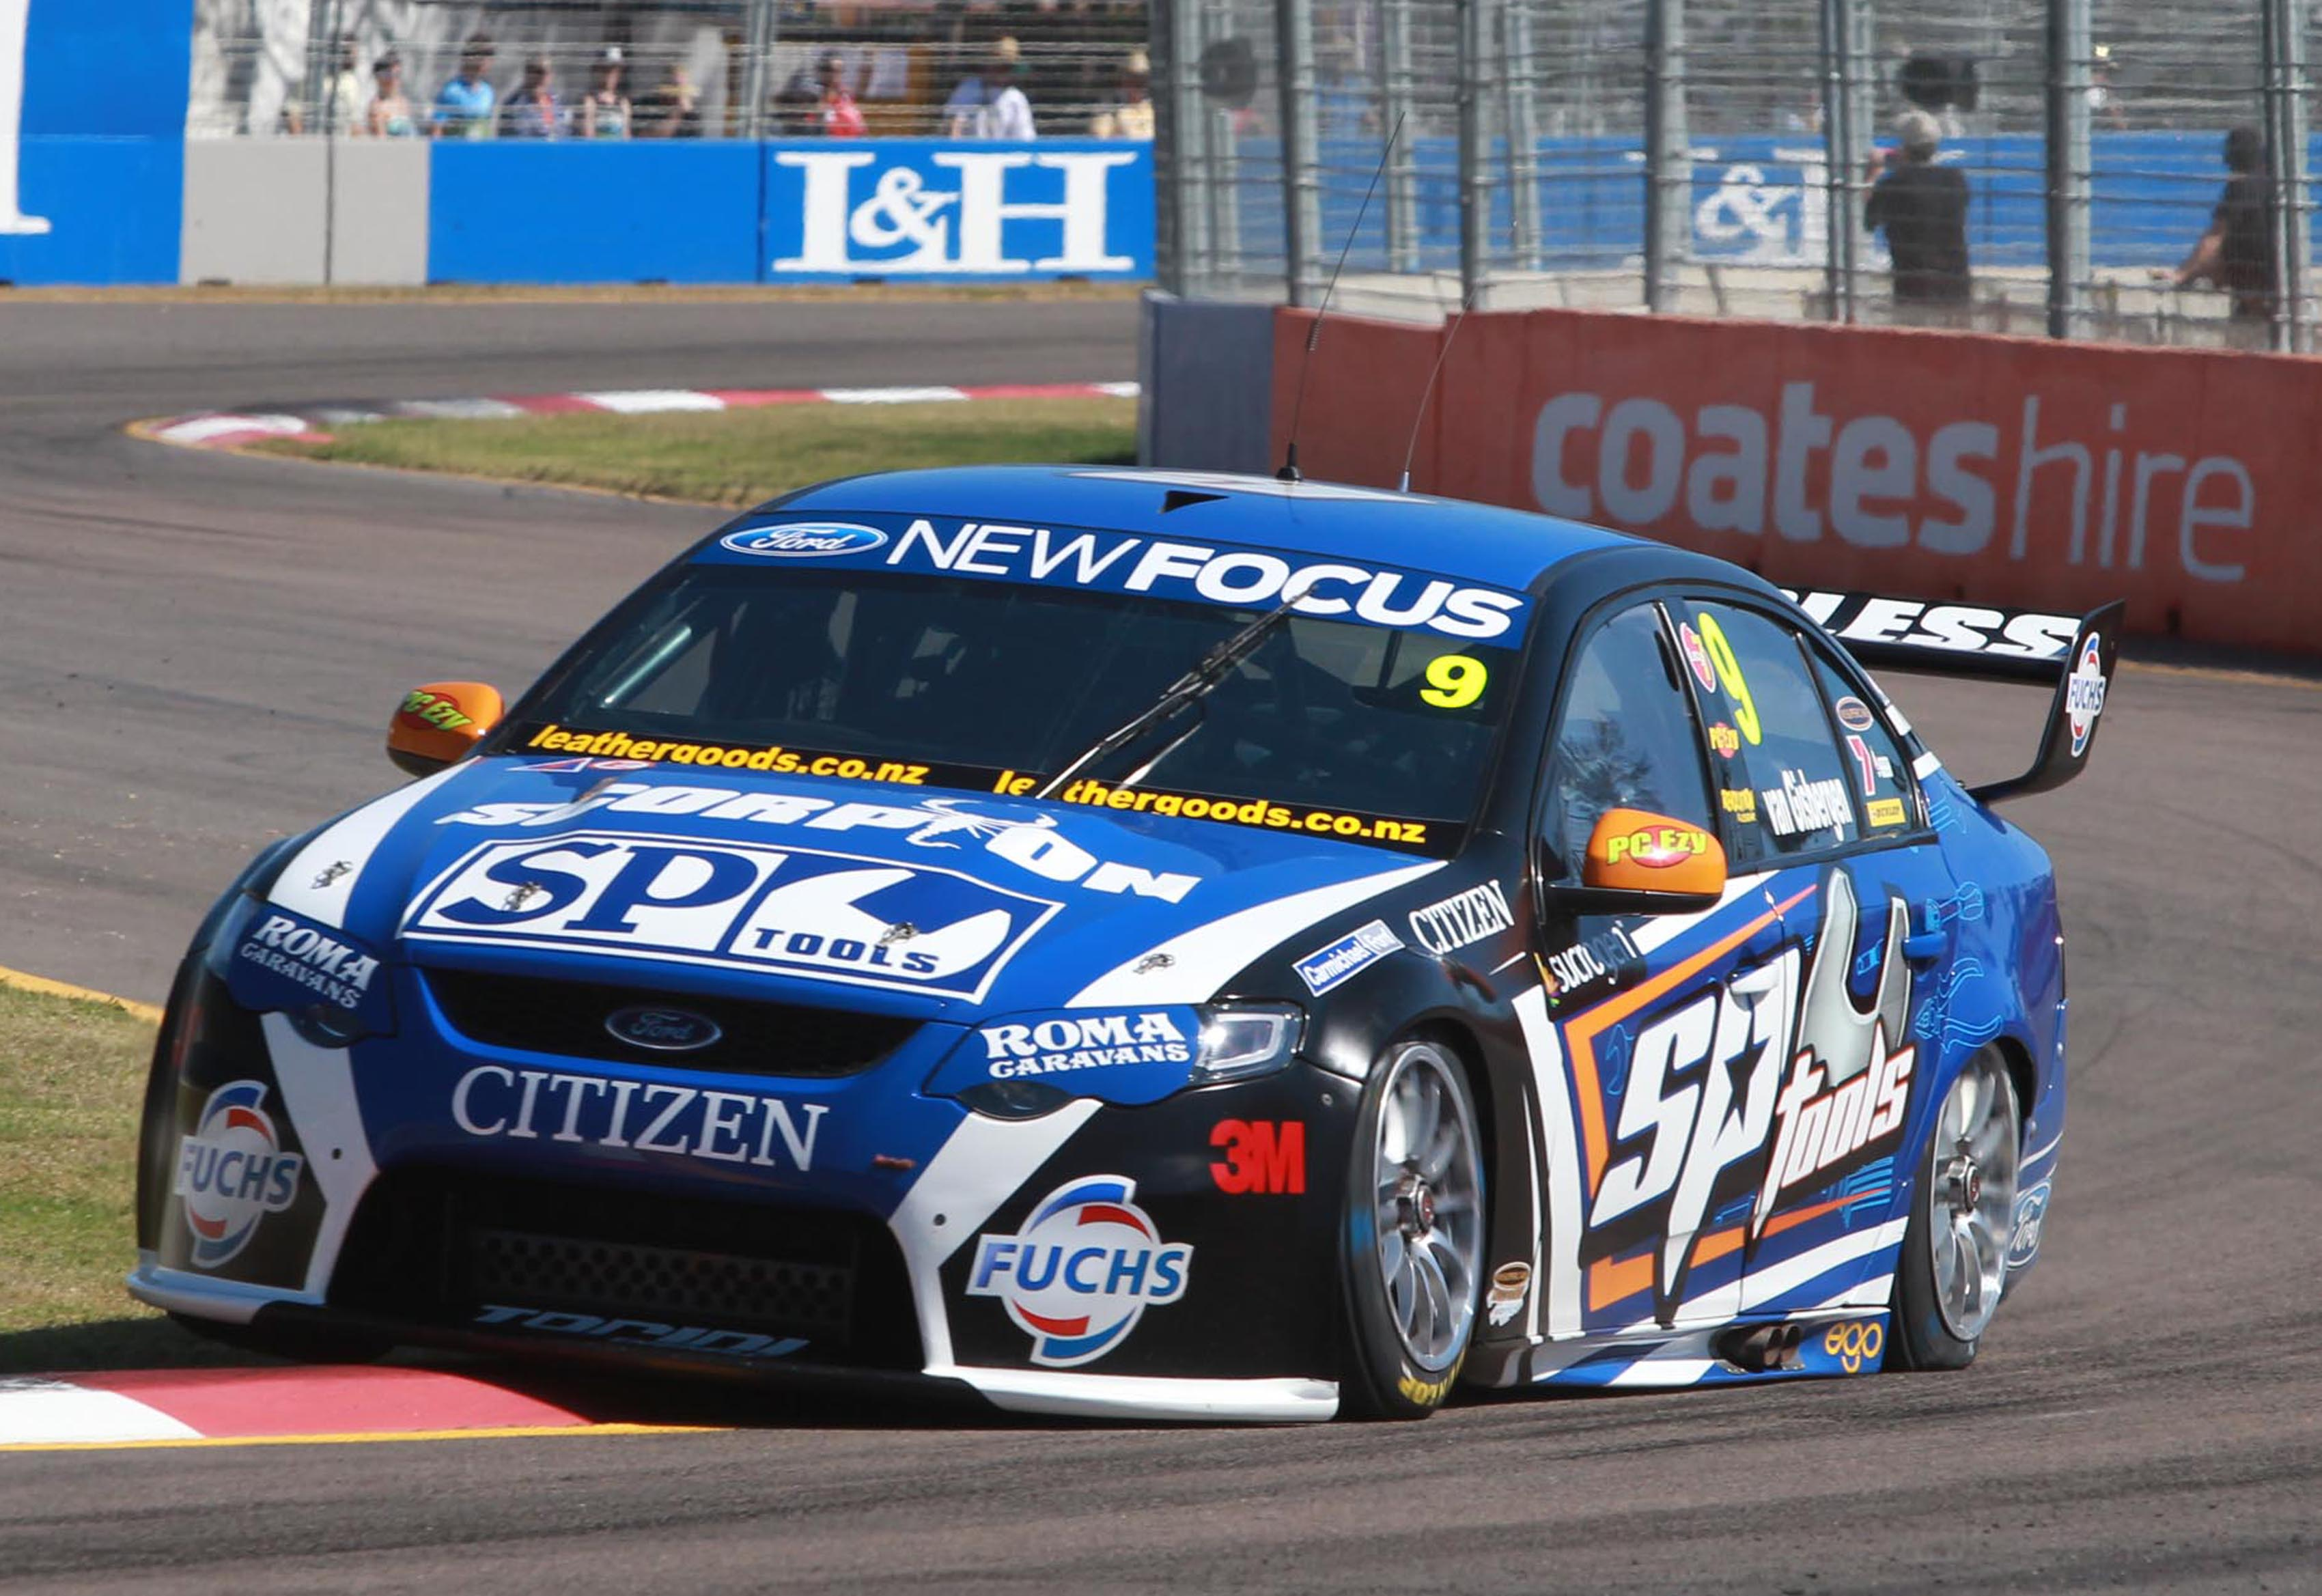 V8 Supercars – SBR Search For More Speed At Townsville